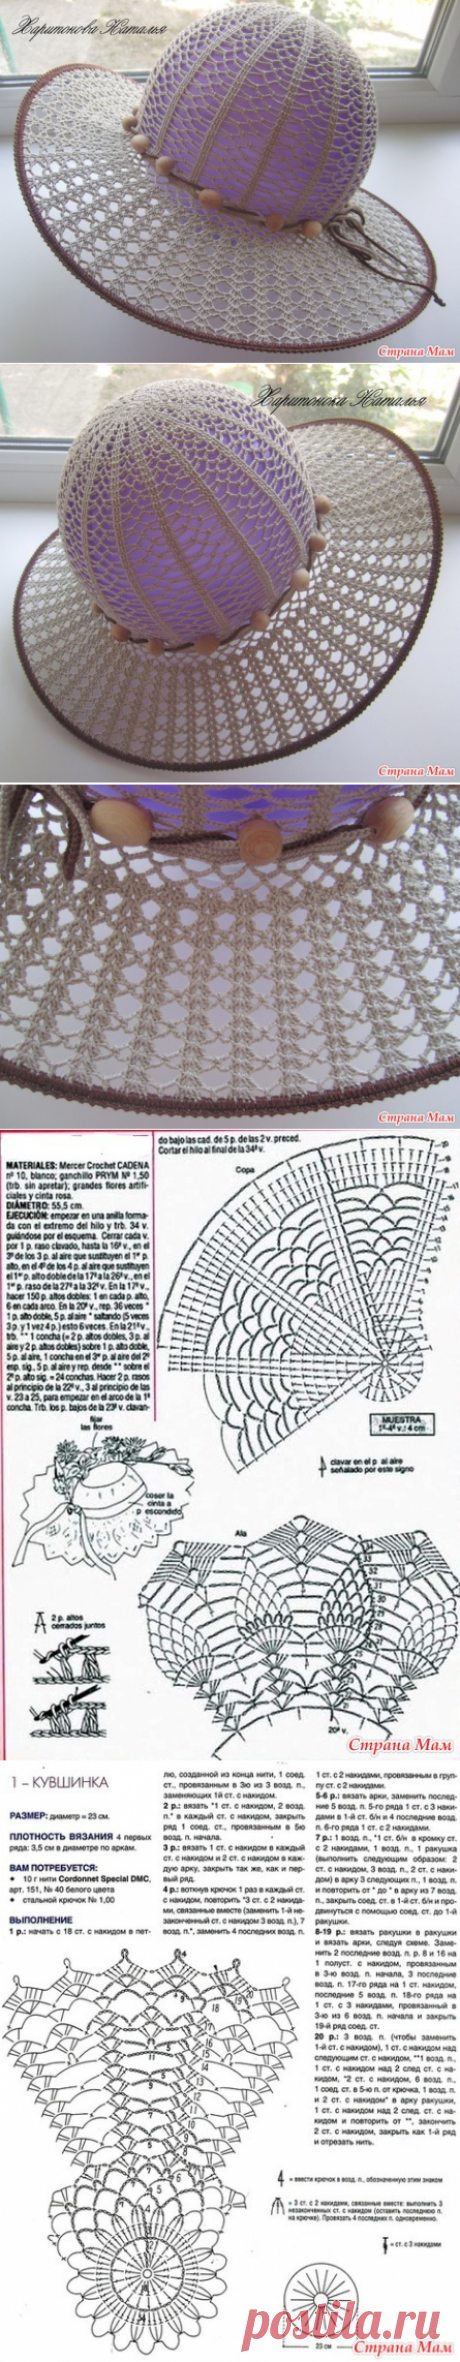 hat knitted a hook Lace - Knitting - the Country of Mothers